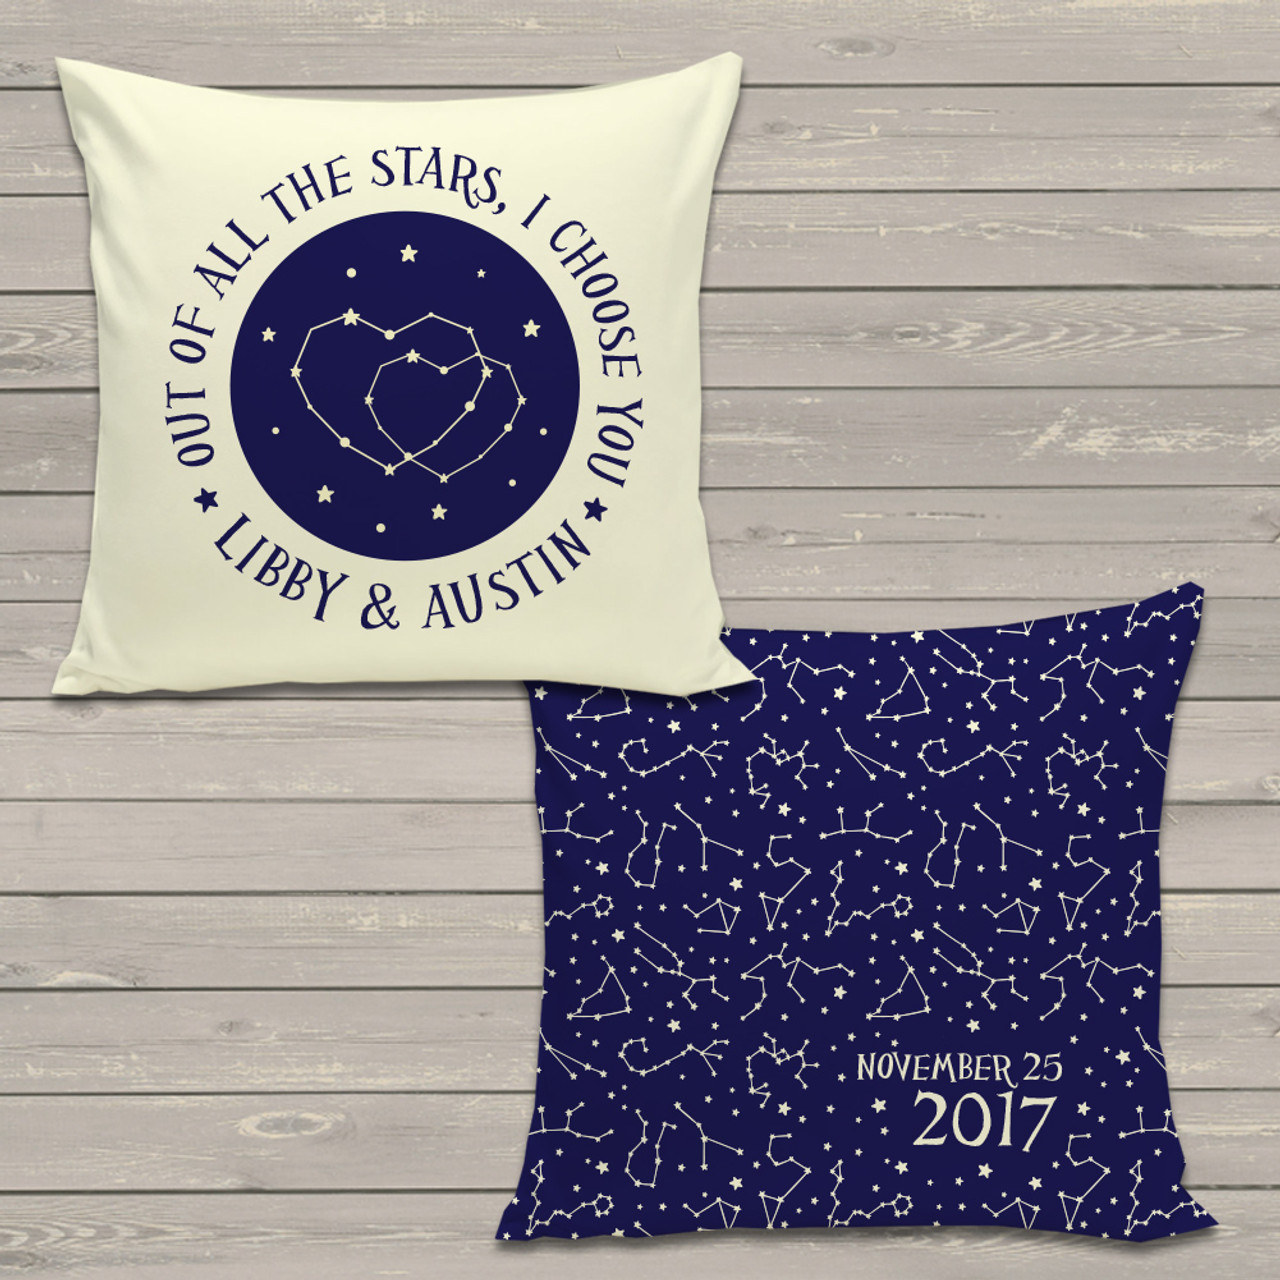 Wedding Gift Pillow Night Sky Constellation Throw Pillowcase